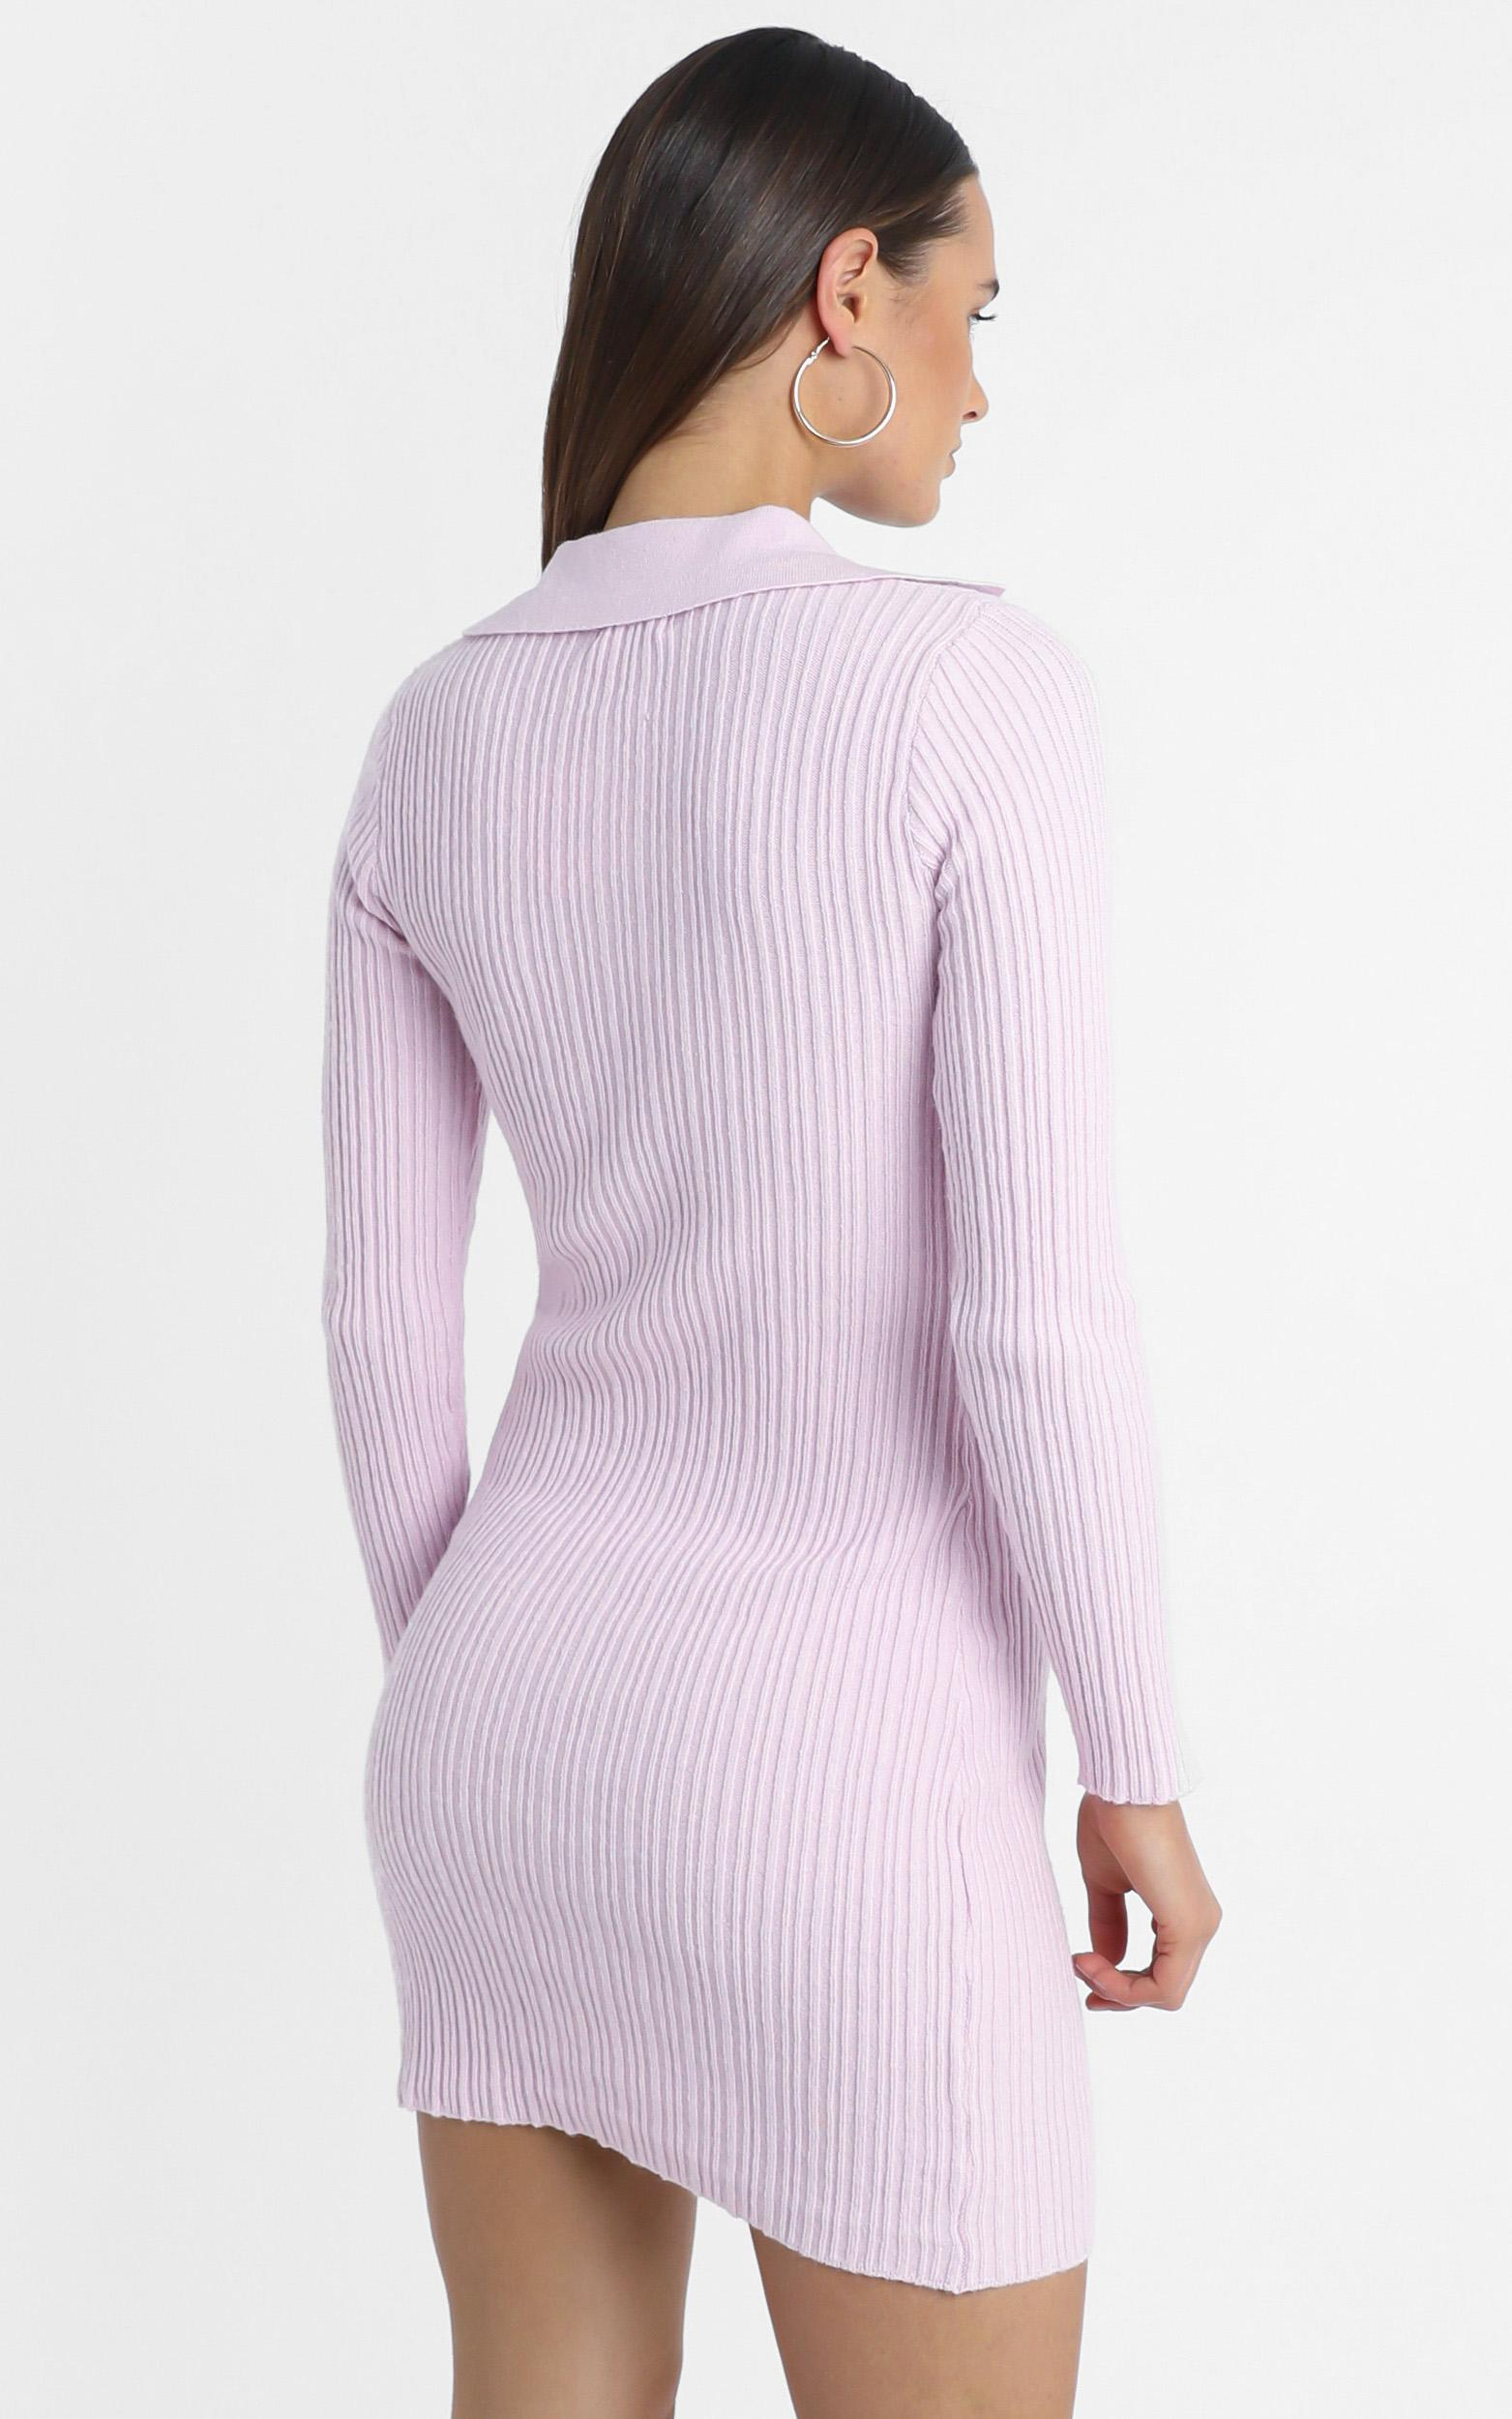 Albury Dress in Lilac - M/L, Purple, hi-res image number null